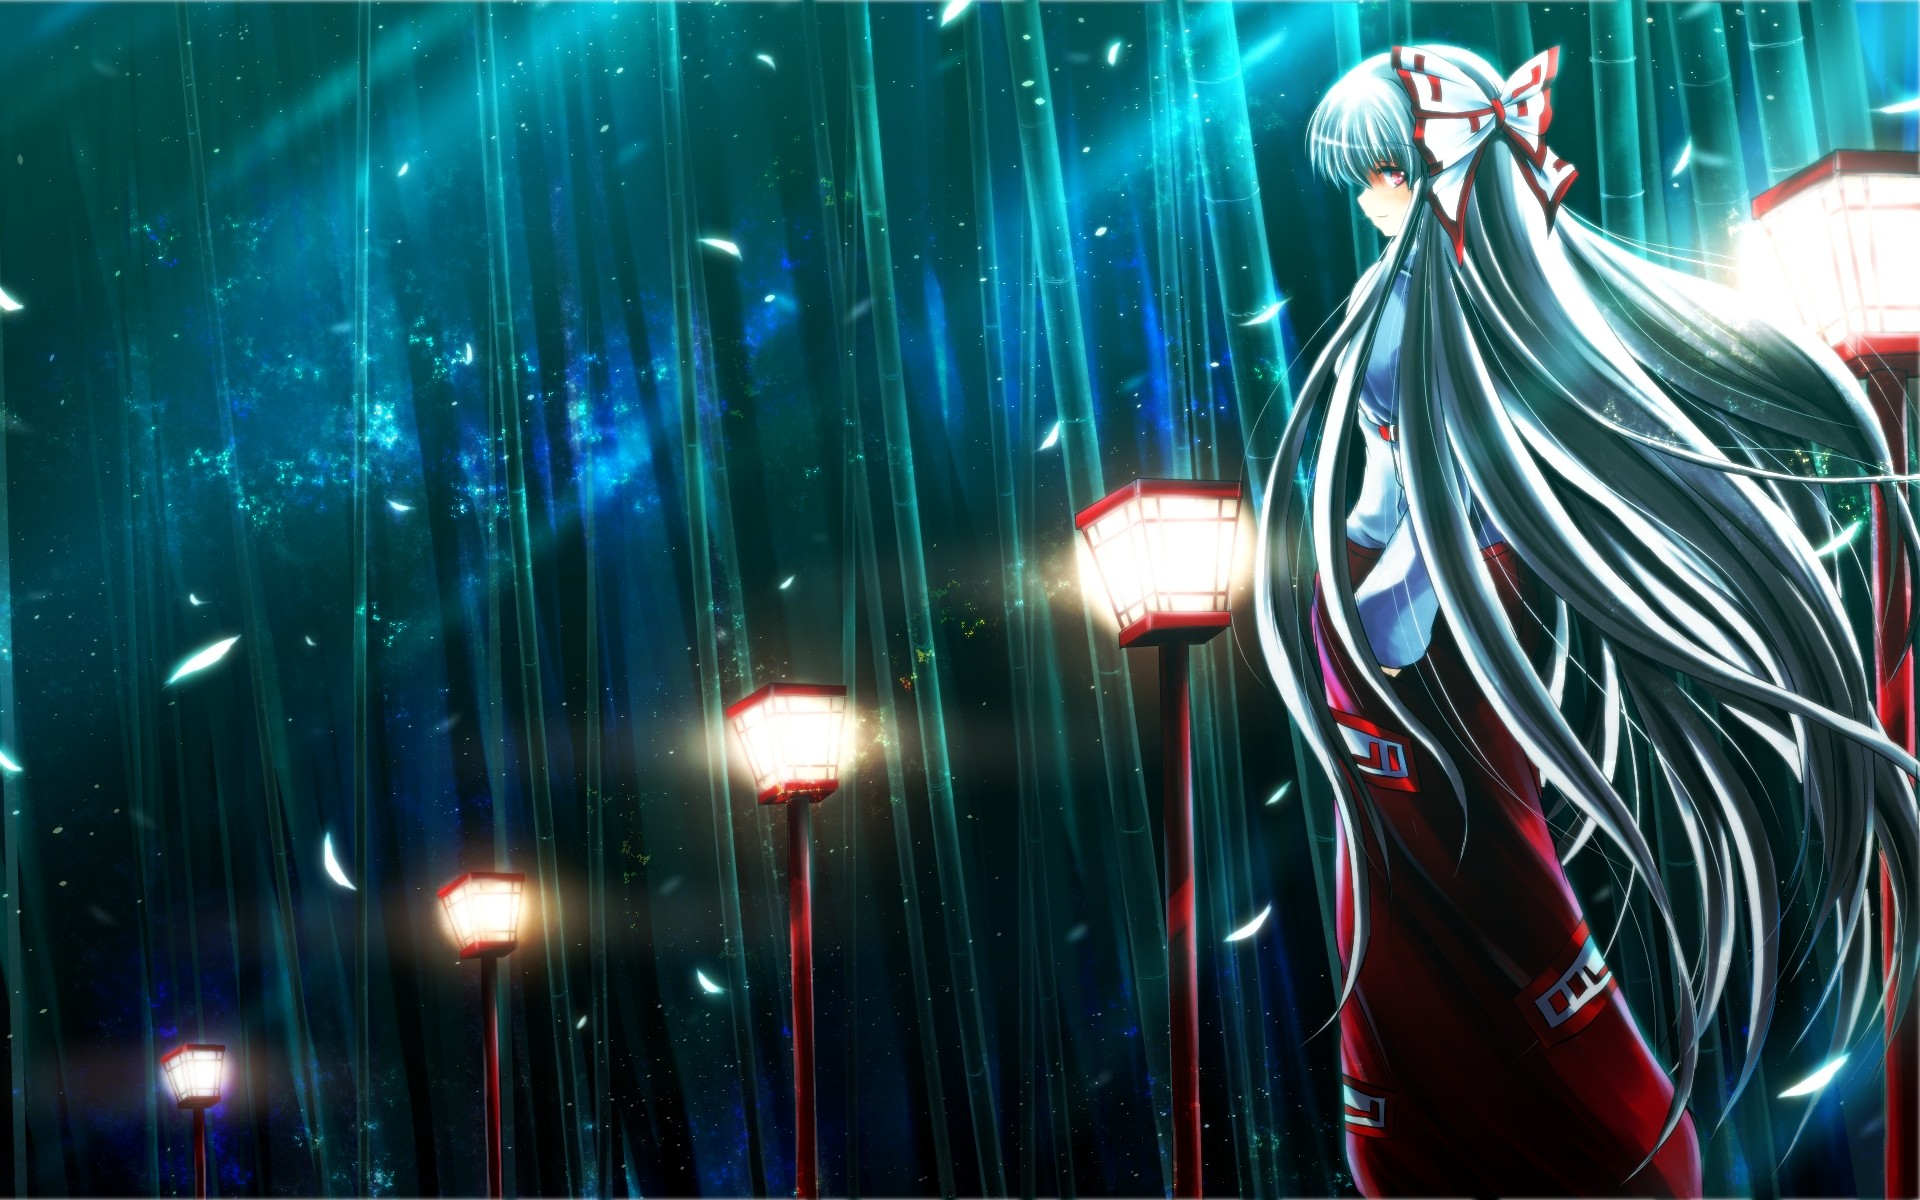 Touhou wallpaper download free cool full hd backgrounds - Download anime wallpaper pack ...